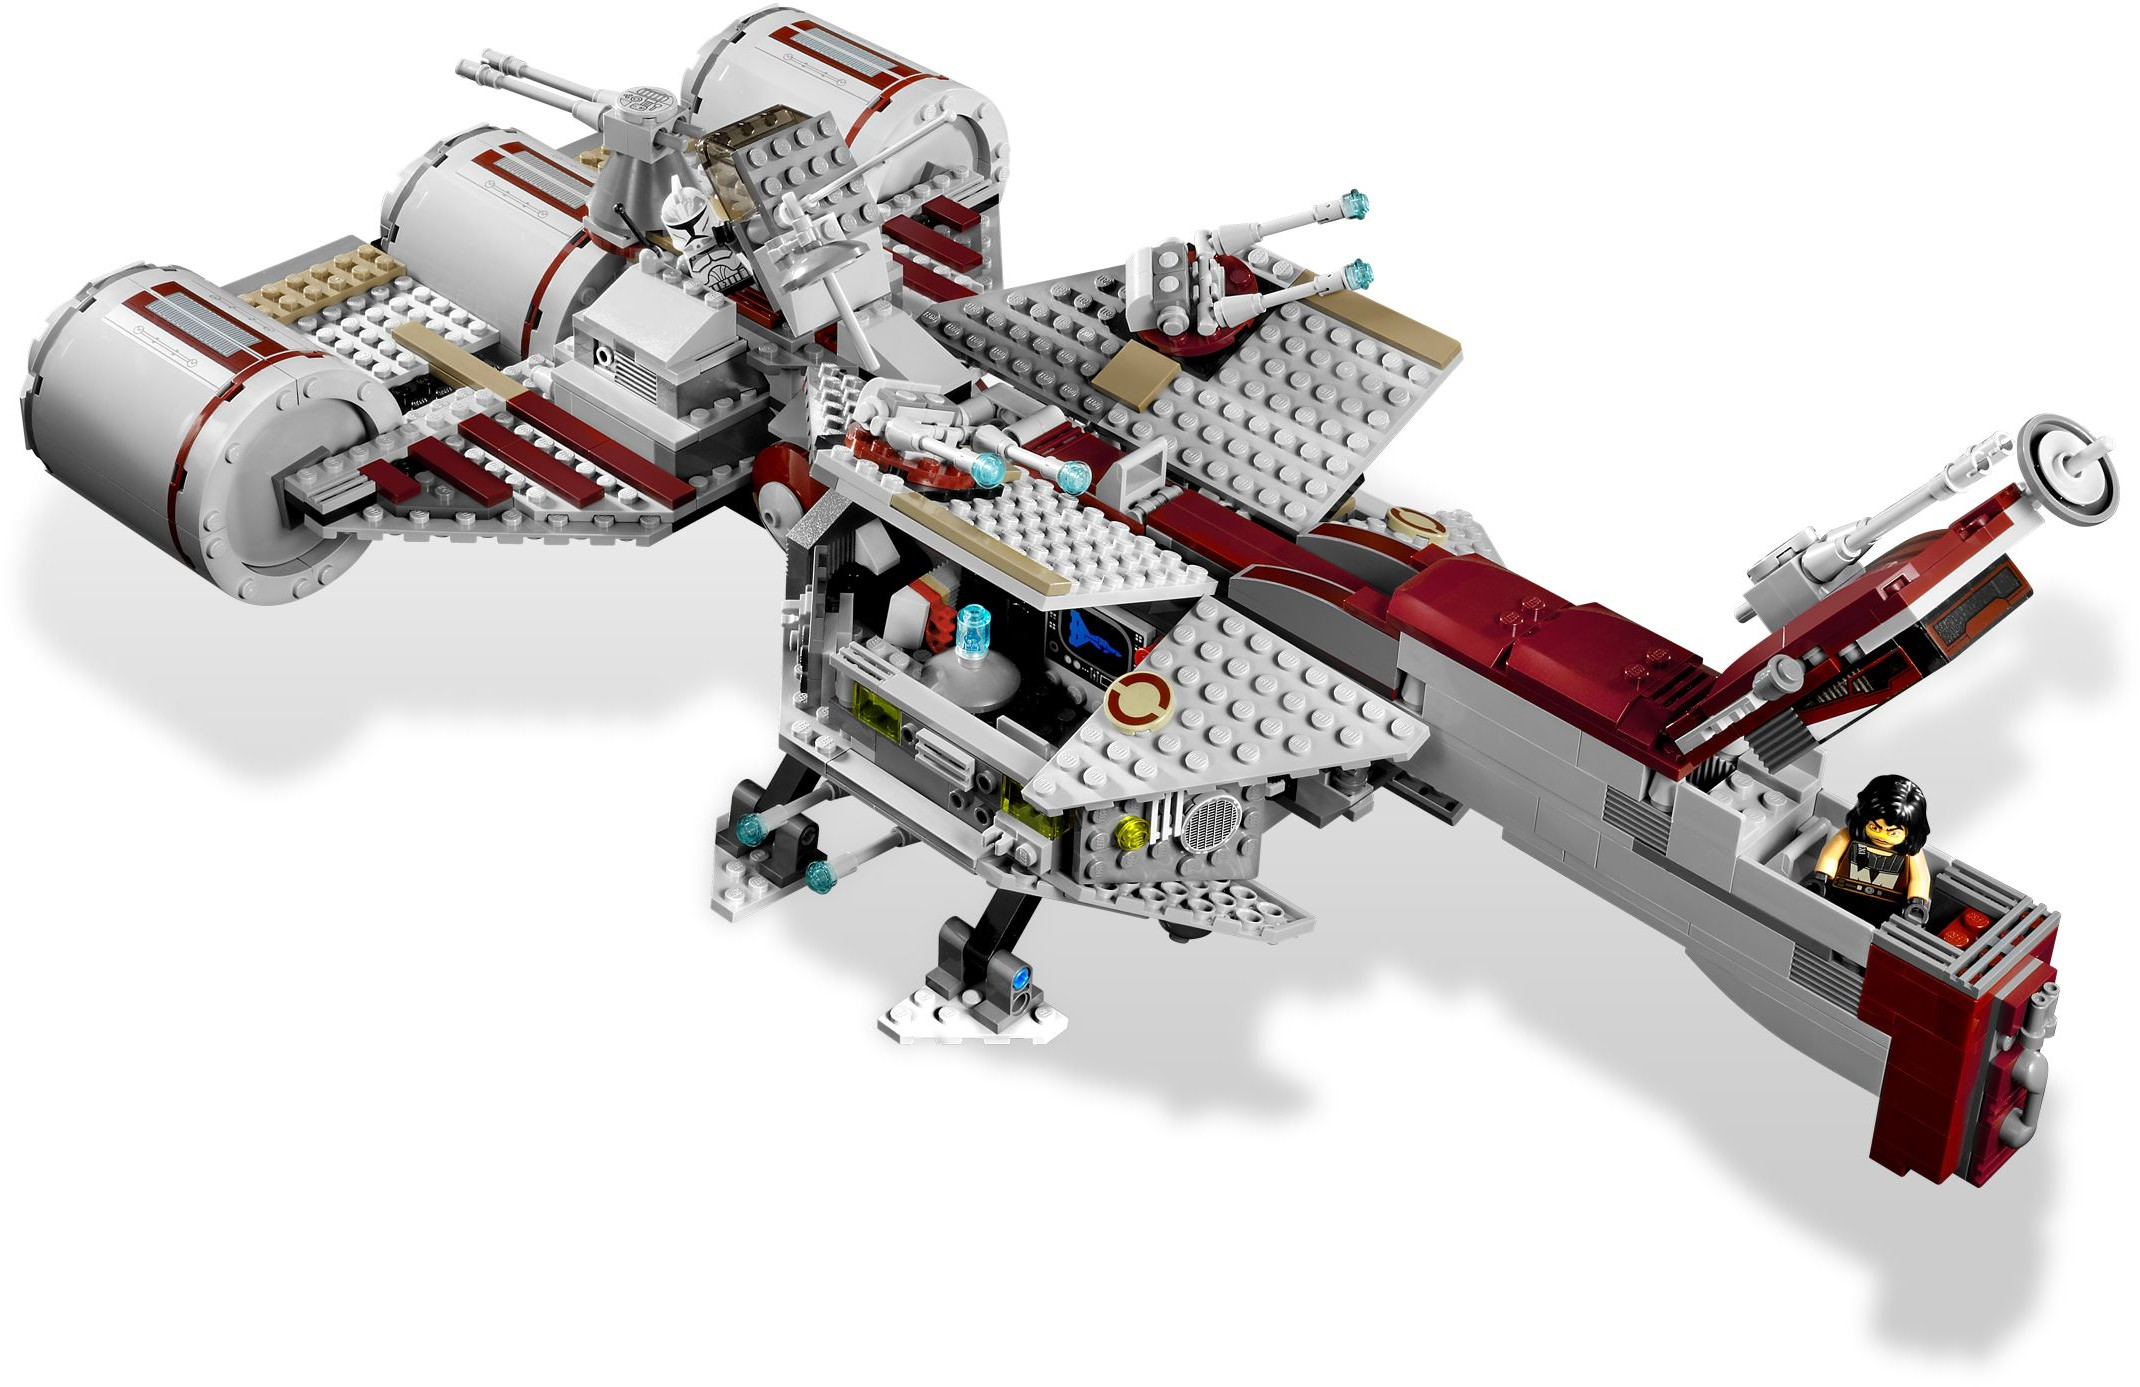 Lego 7964 Republic Frigate 7665 Star Wars Cruiser Take The Jedi Knights And Clone Heroes Into Battle With